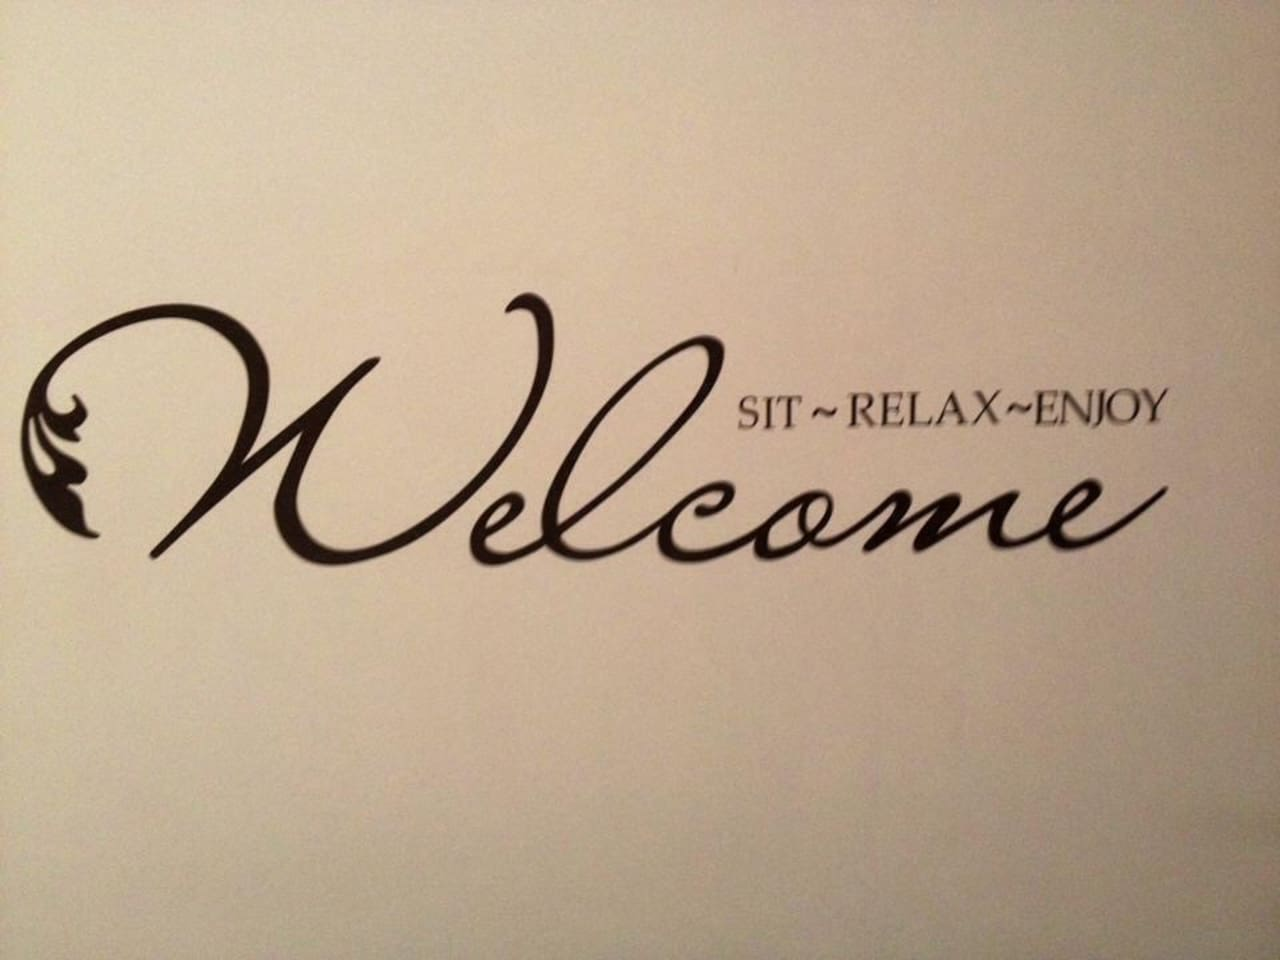 We welcome you!!!